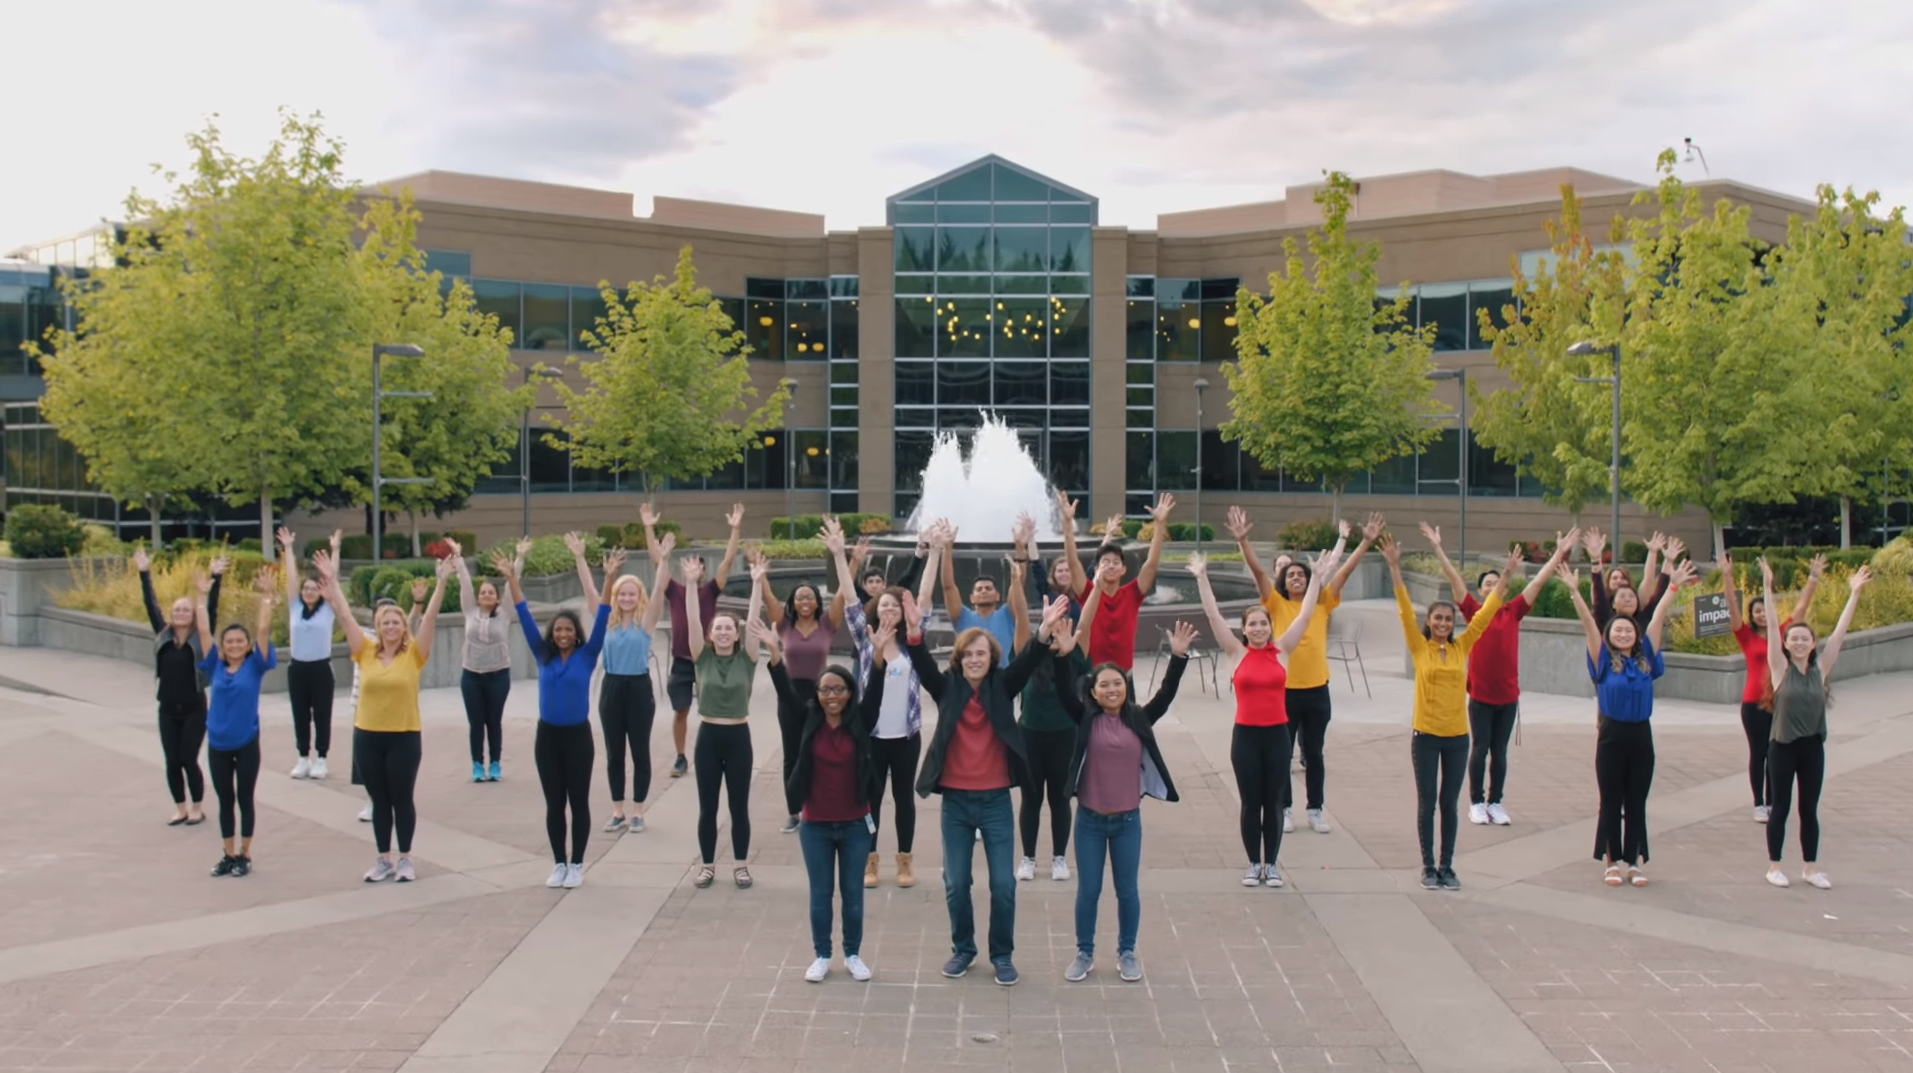 Microsoft's Interns Made A Musical, And It's Only A Little Weird